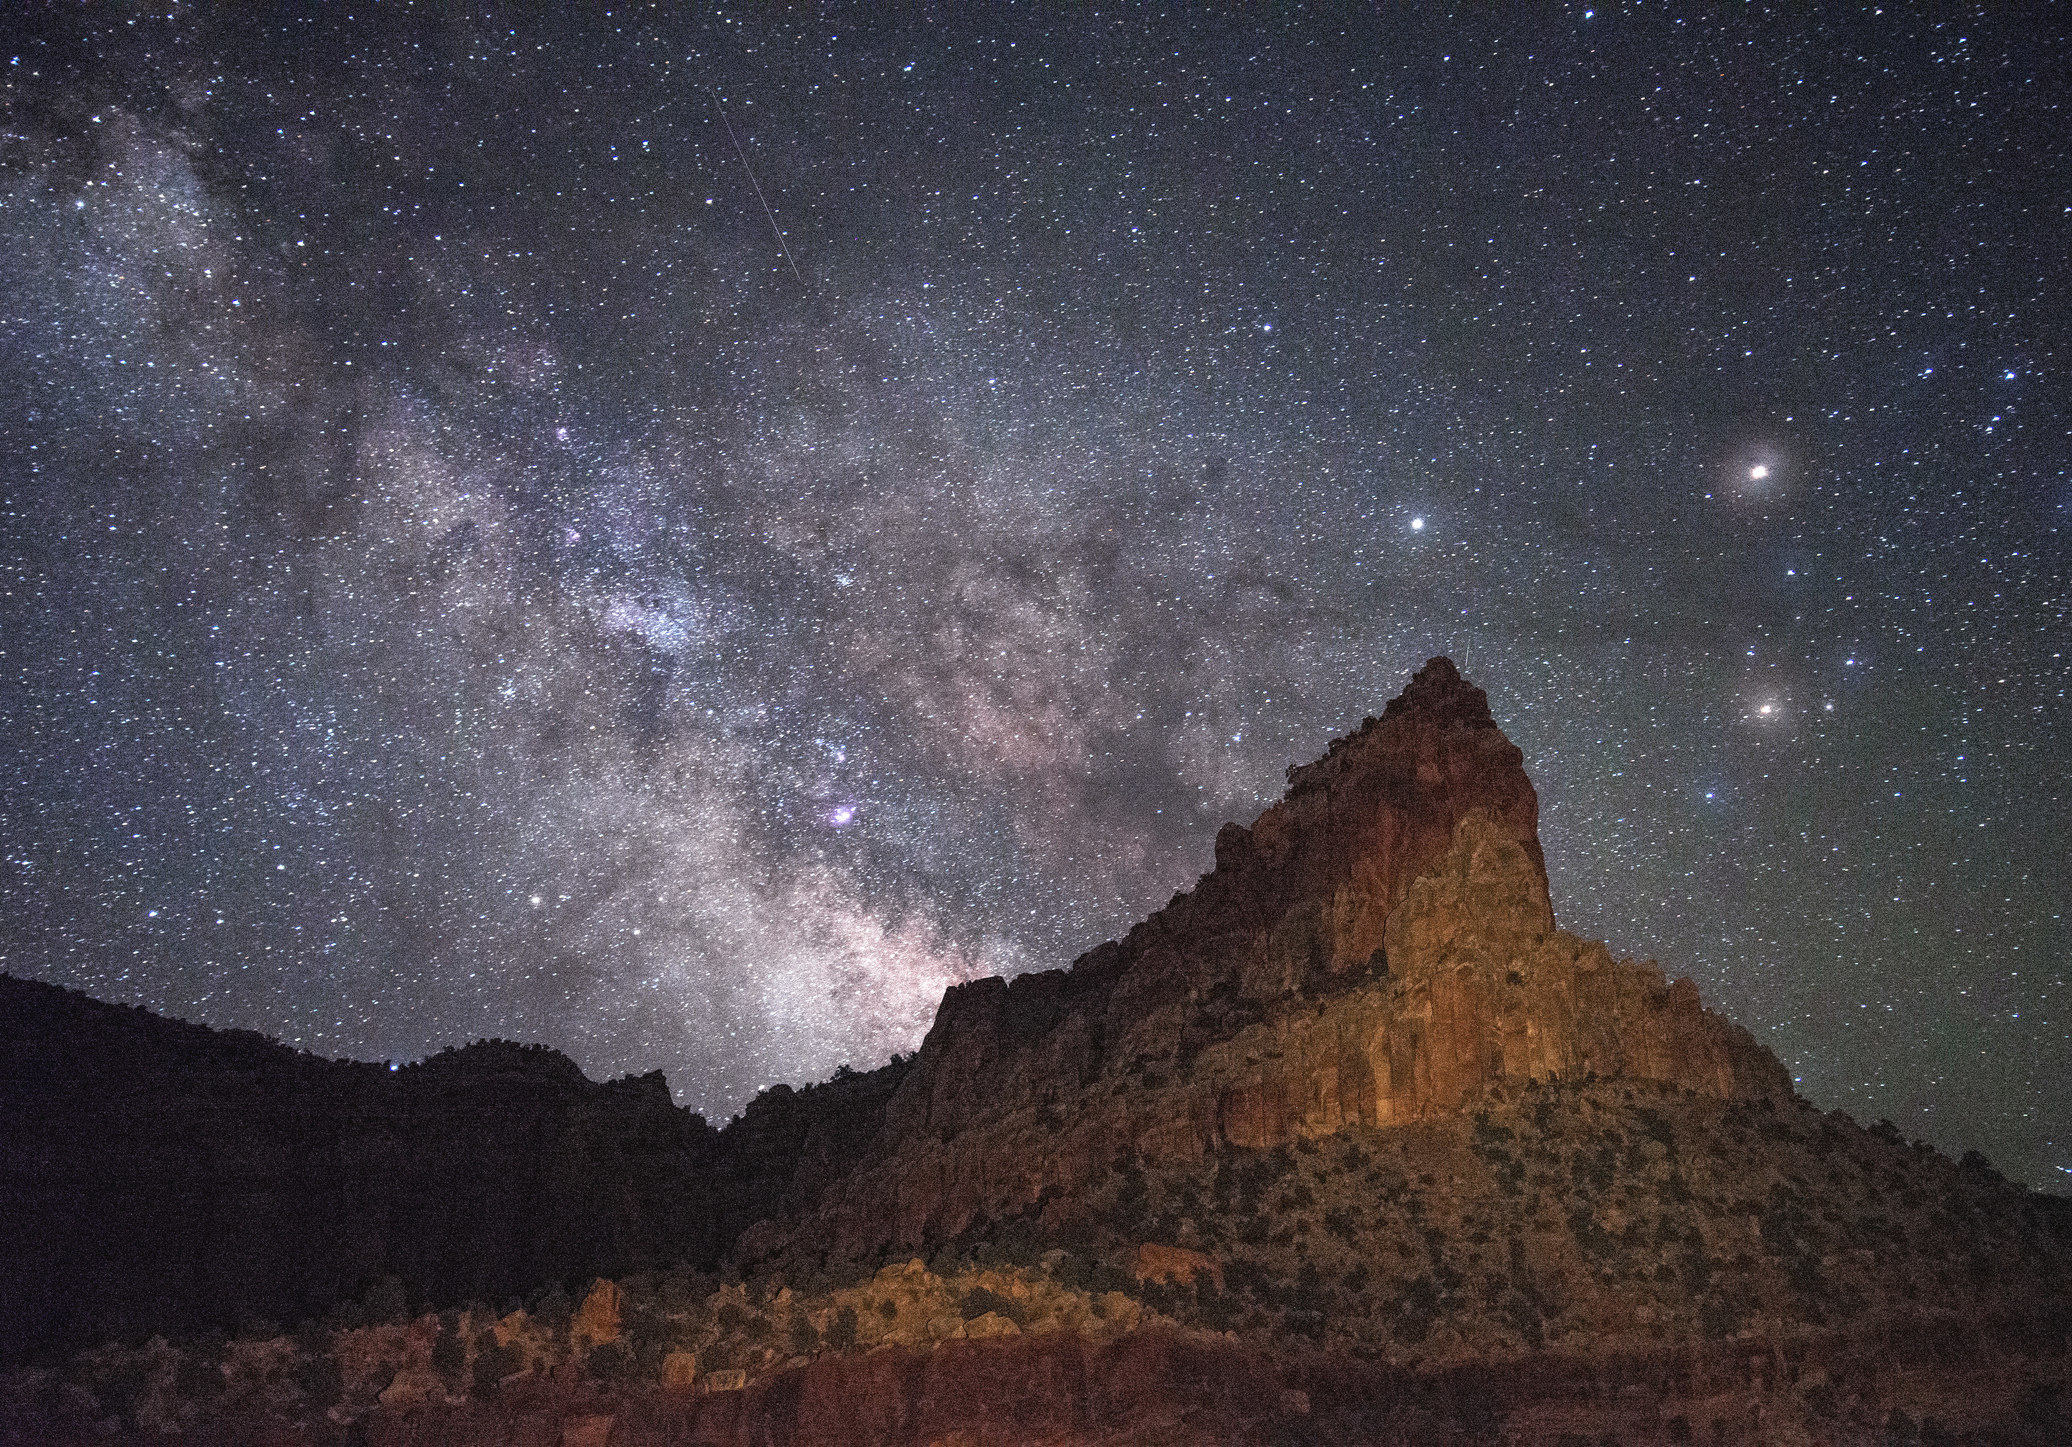 A starry night at Capitol Reef National Park where the Milky Way is visible to the naked eye.